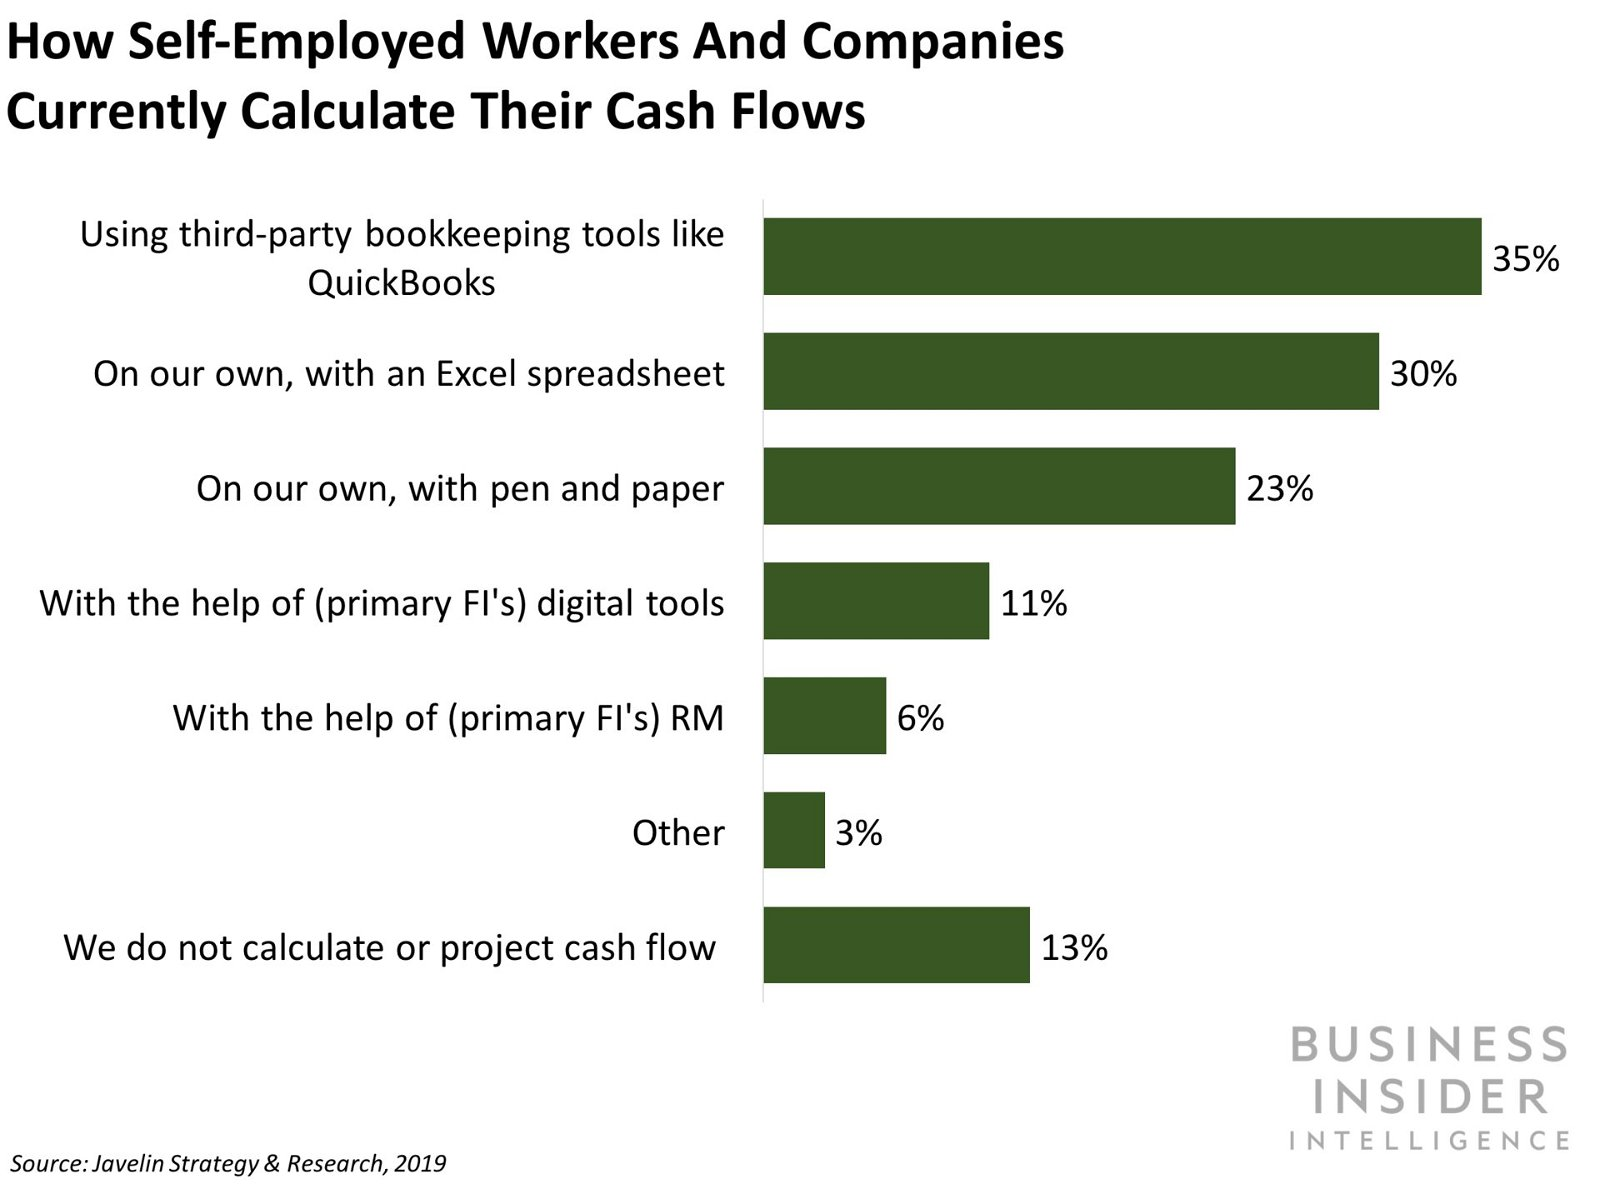 PNC tests account for gig economy workers